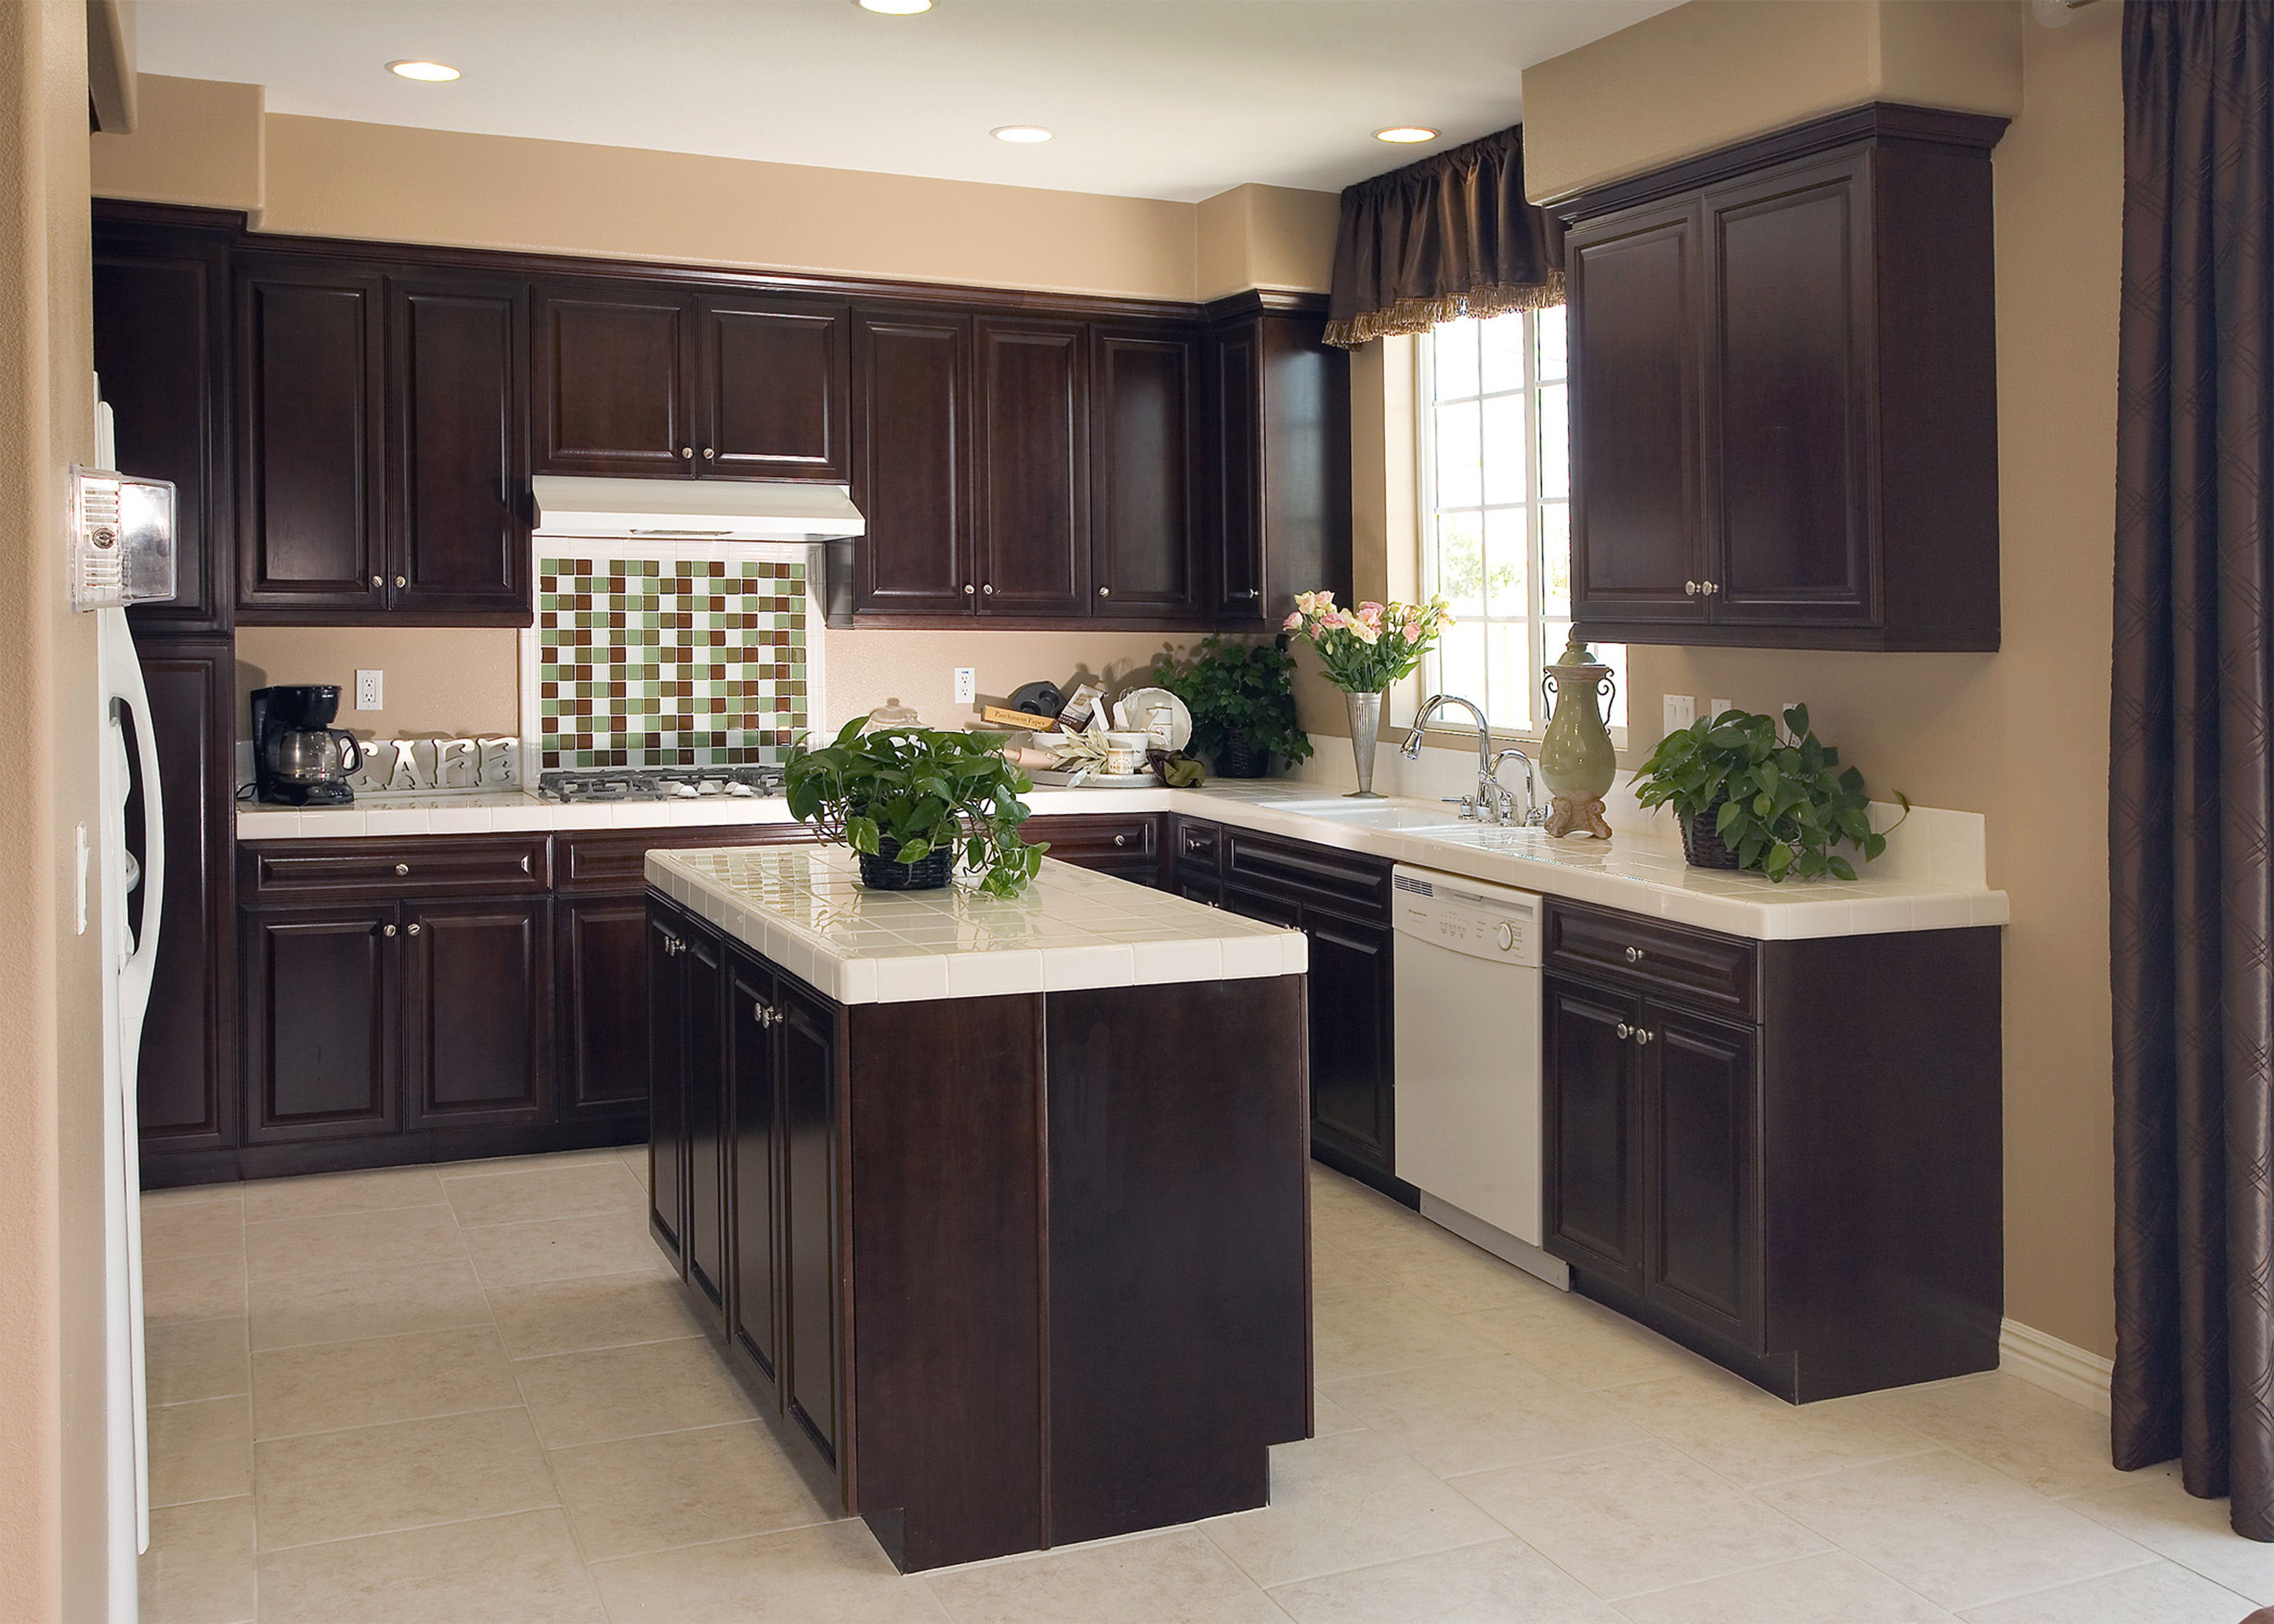 White And Brown Kitchen Cabinet Ideas   Novocom.top